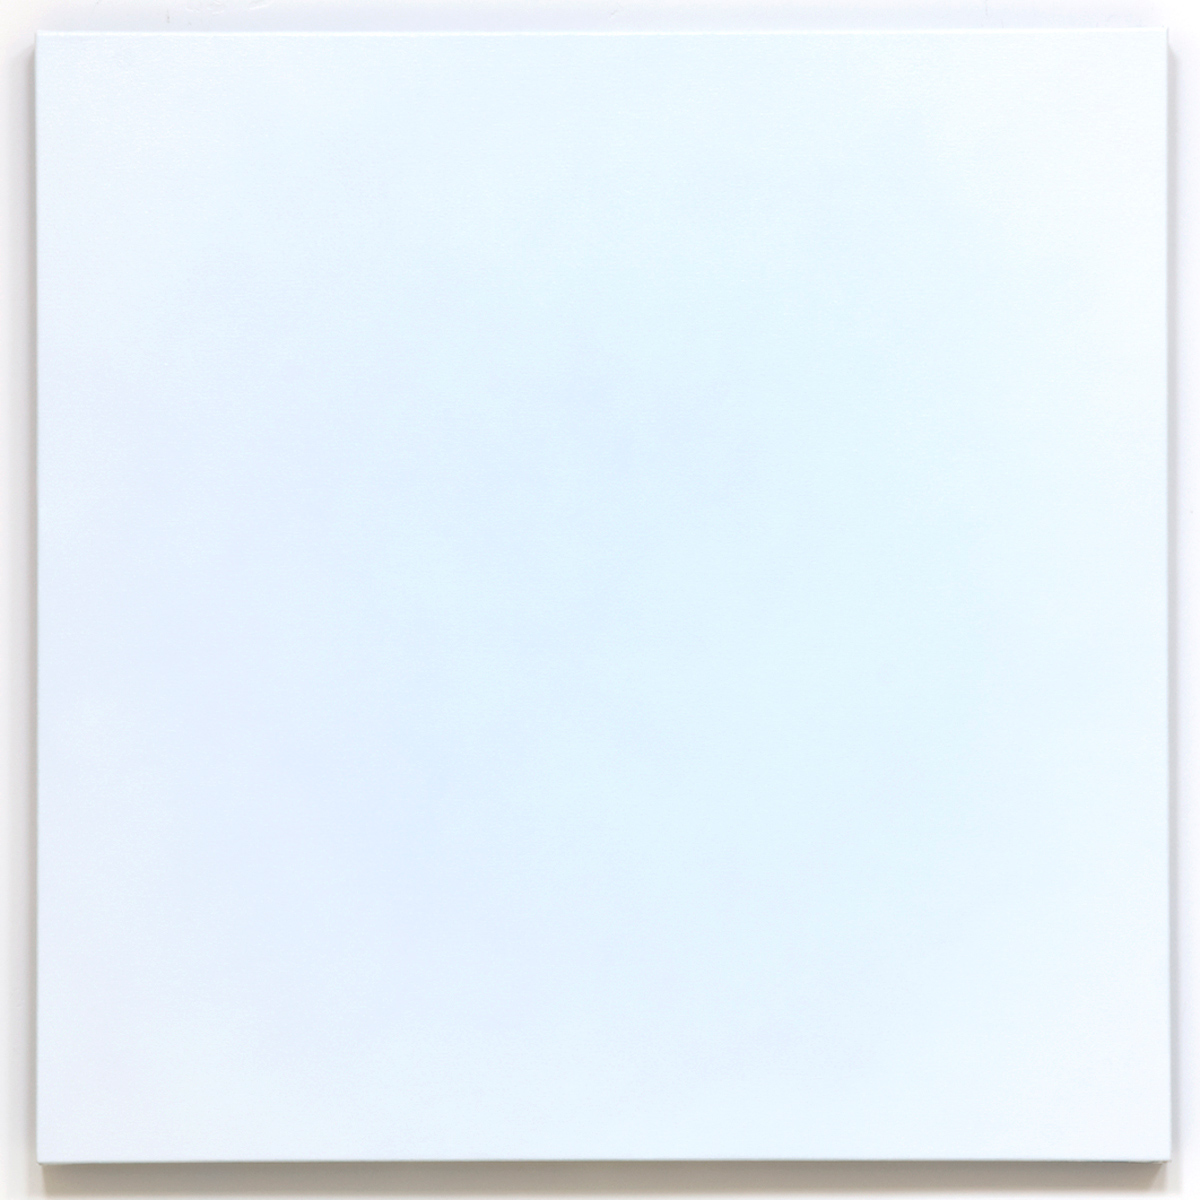 Pierce 1 (White), Equivalence Blue Orange Series, 2008, oil on canvas, 40 x 40 in. (102 x 102 cm.)